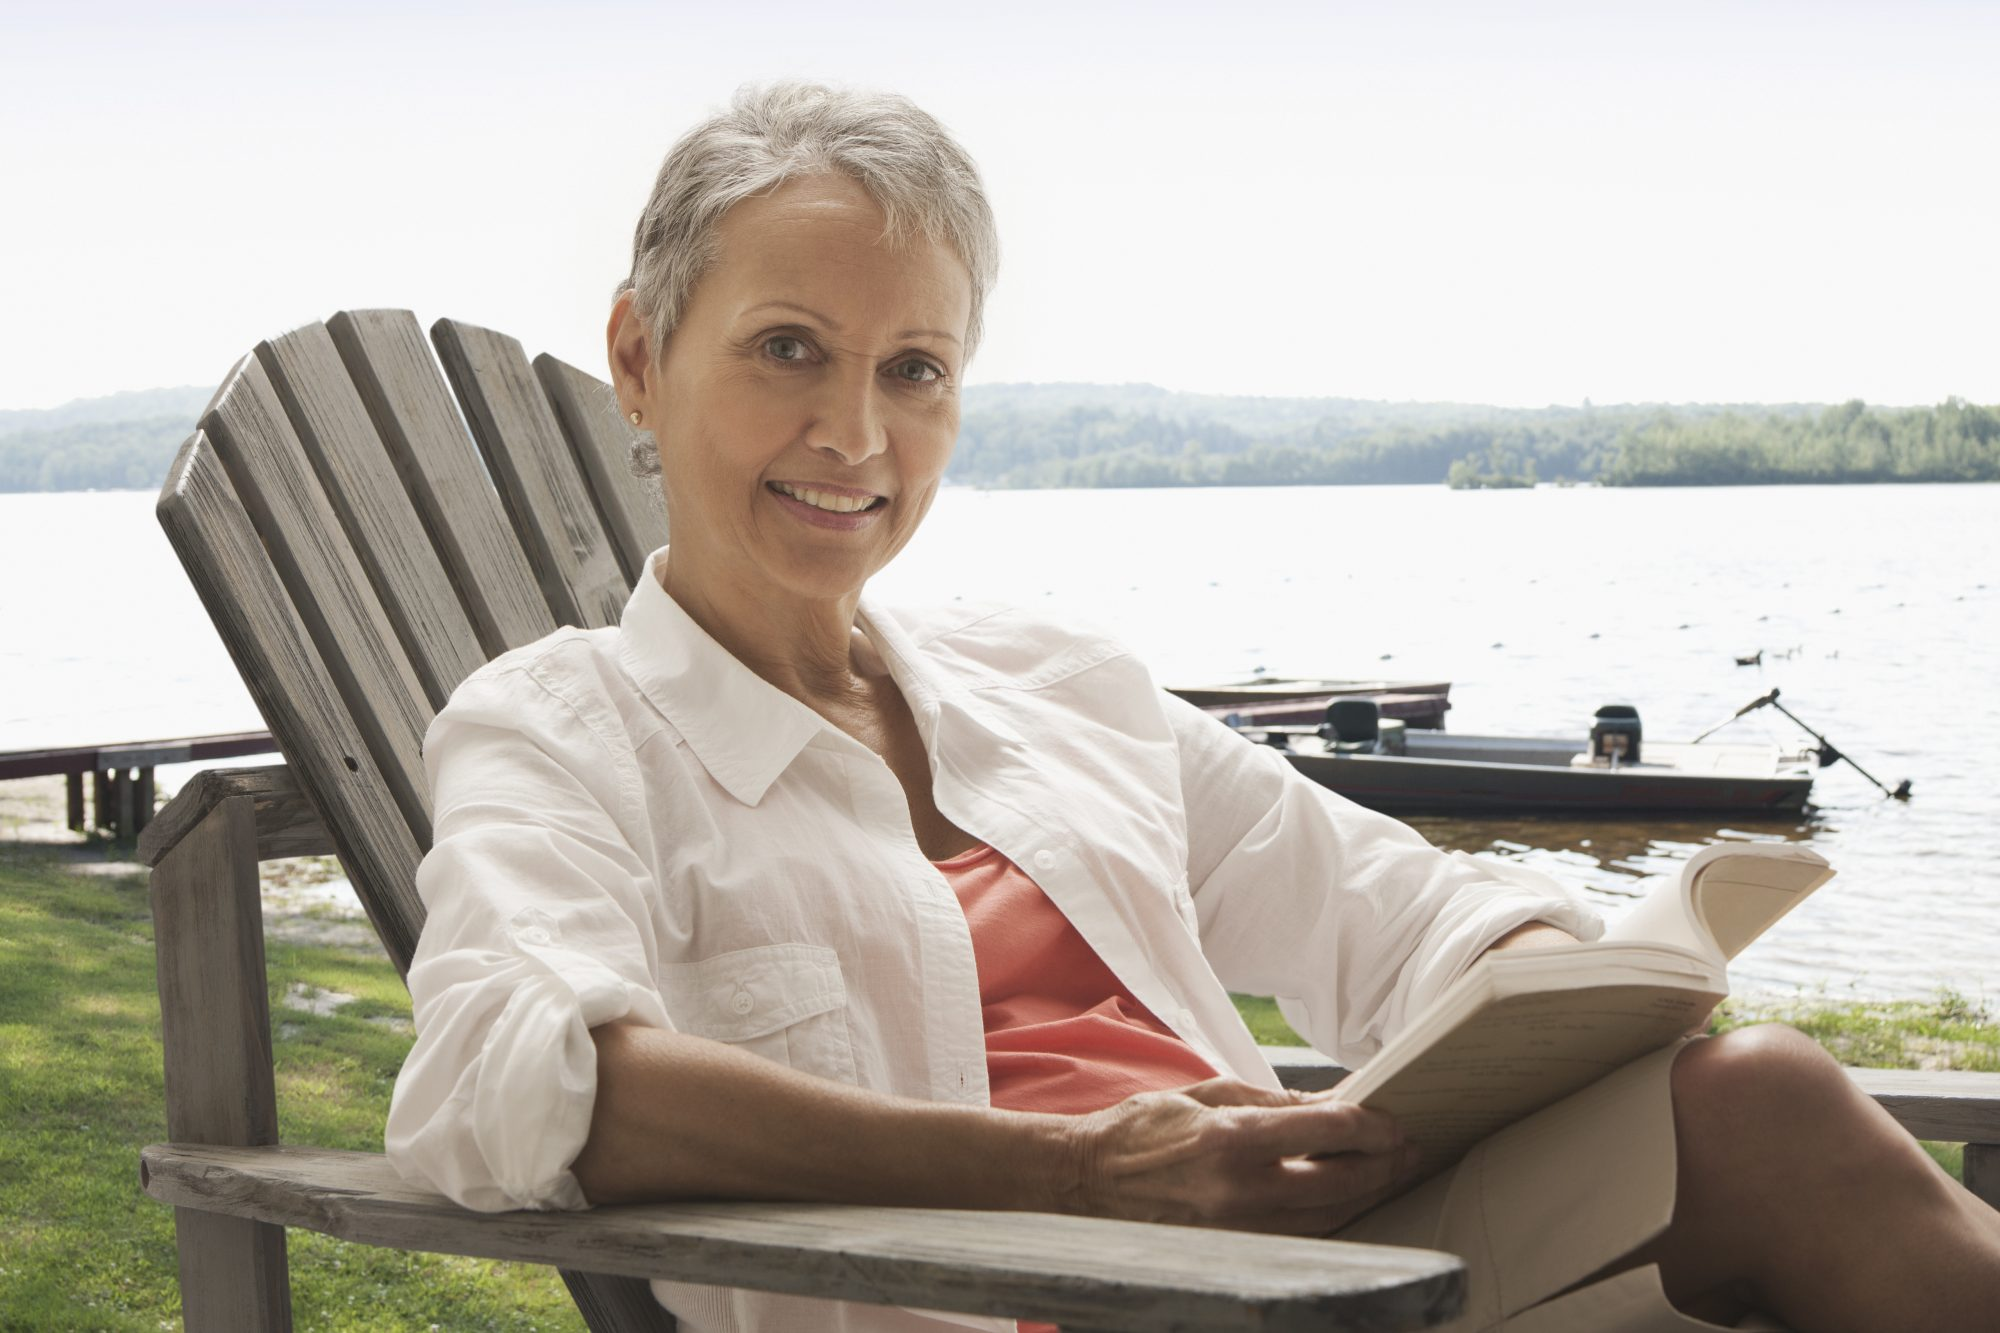 Woman sitting outdoor reading book